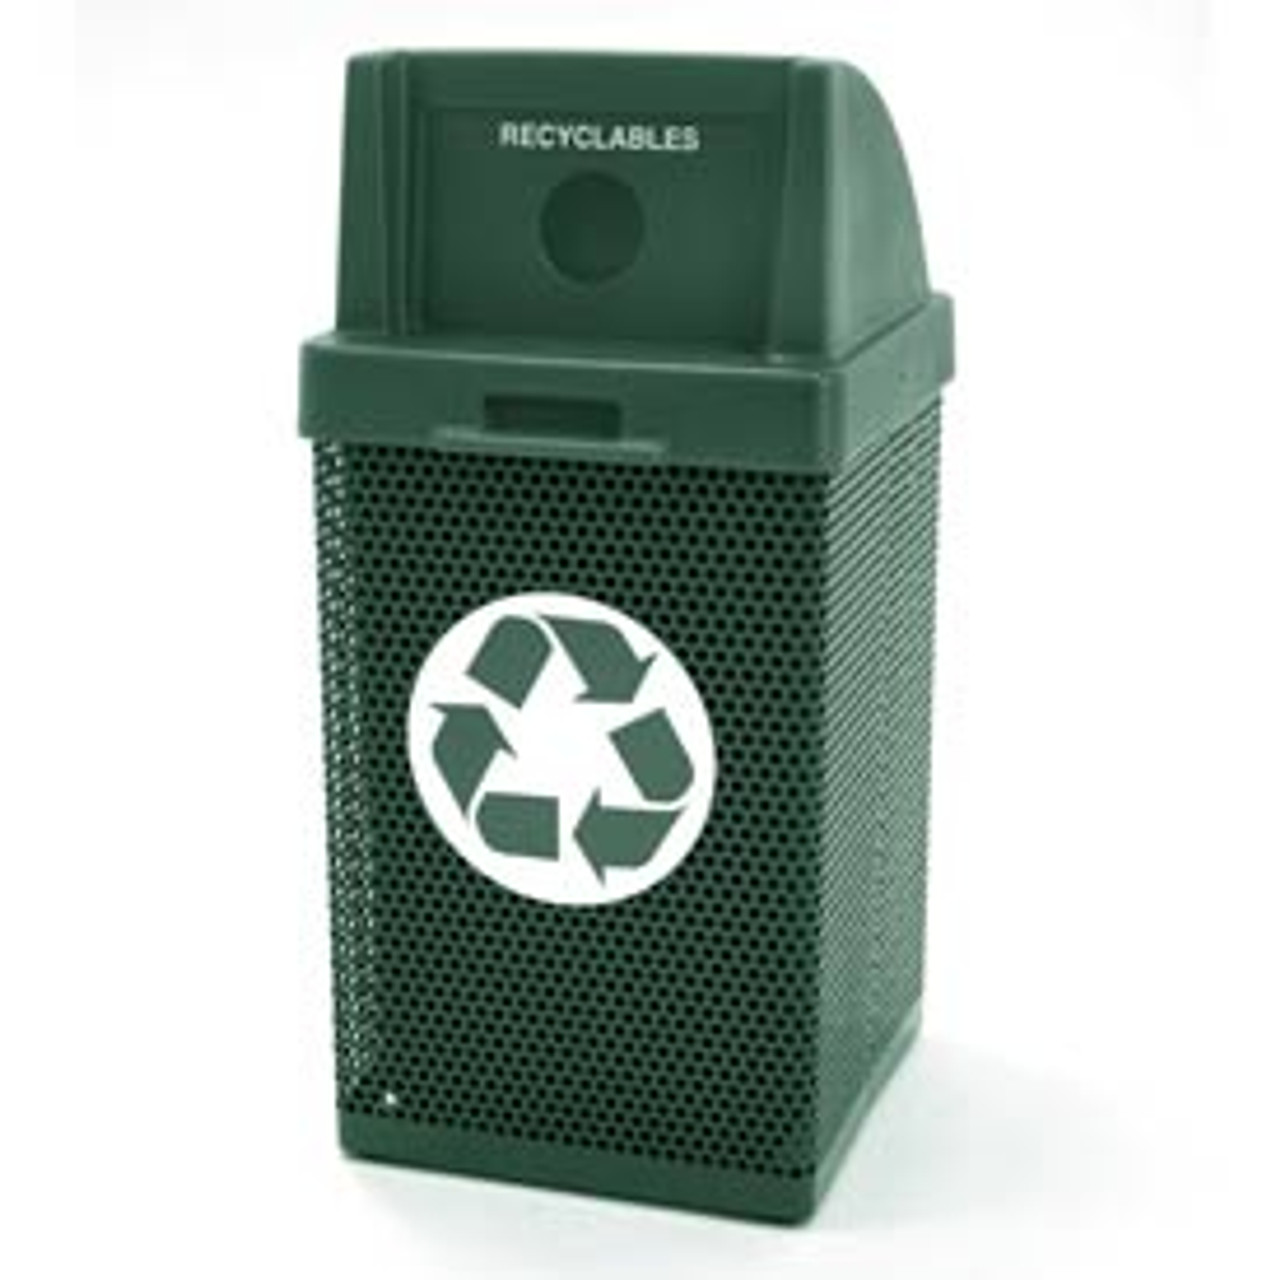 38 Gallon Metal Armor Blue Recycling Outdoor Waste Container MF3058 in Green